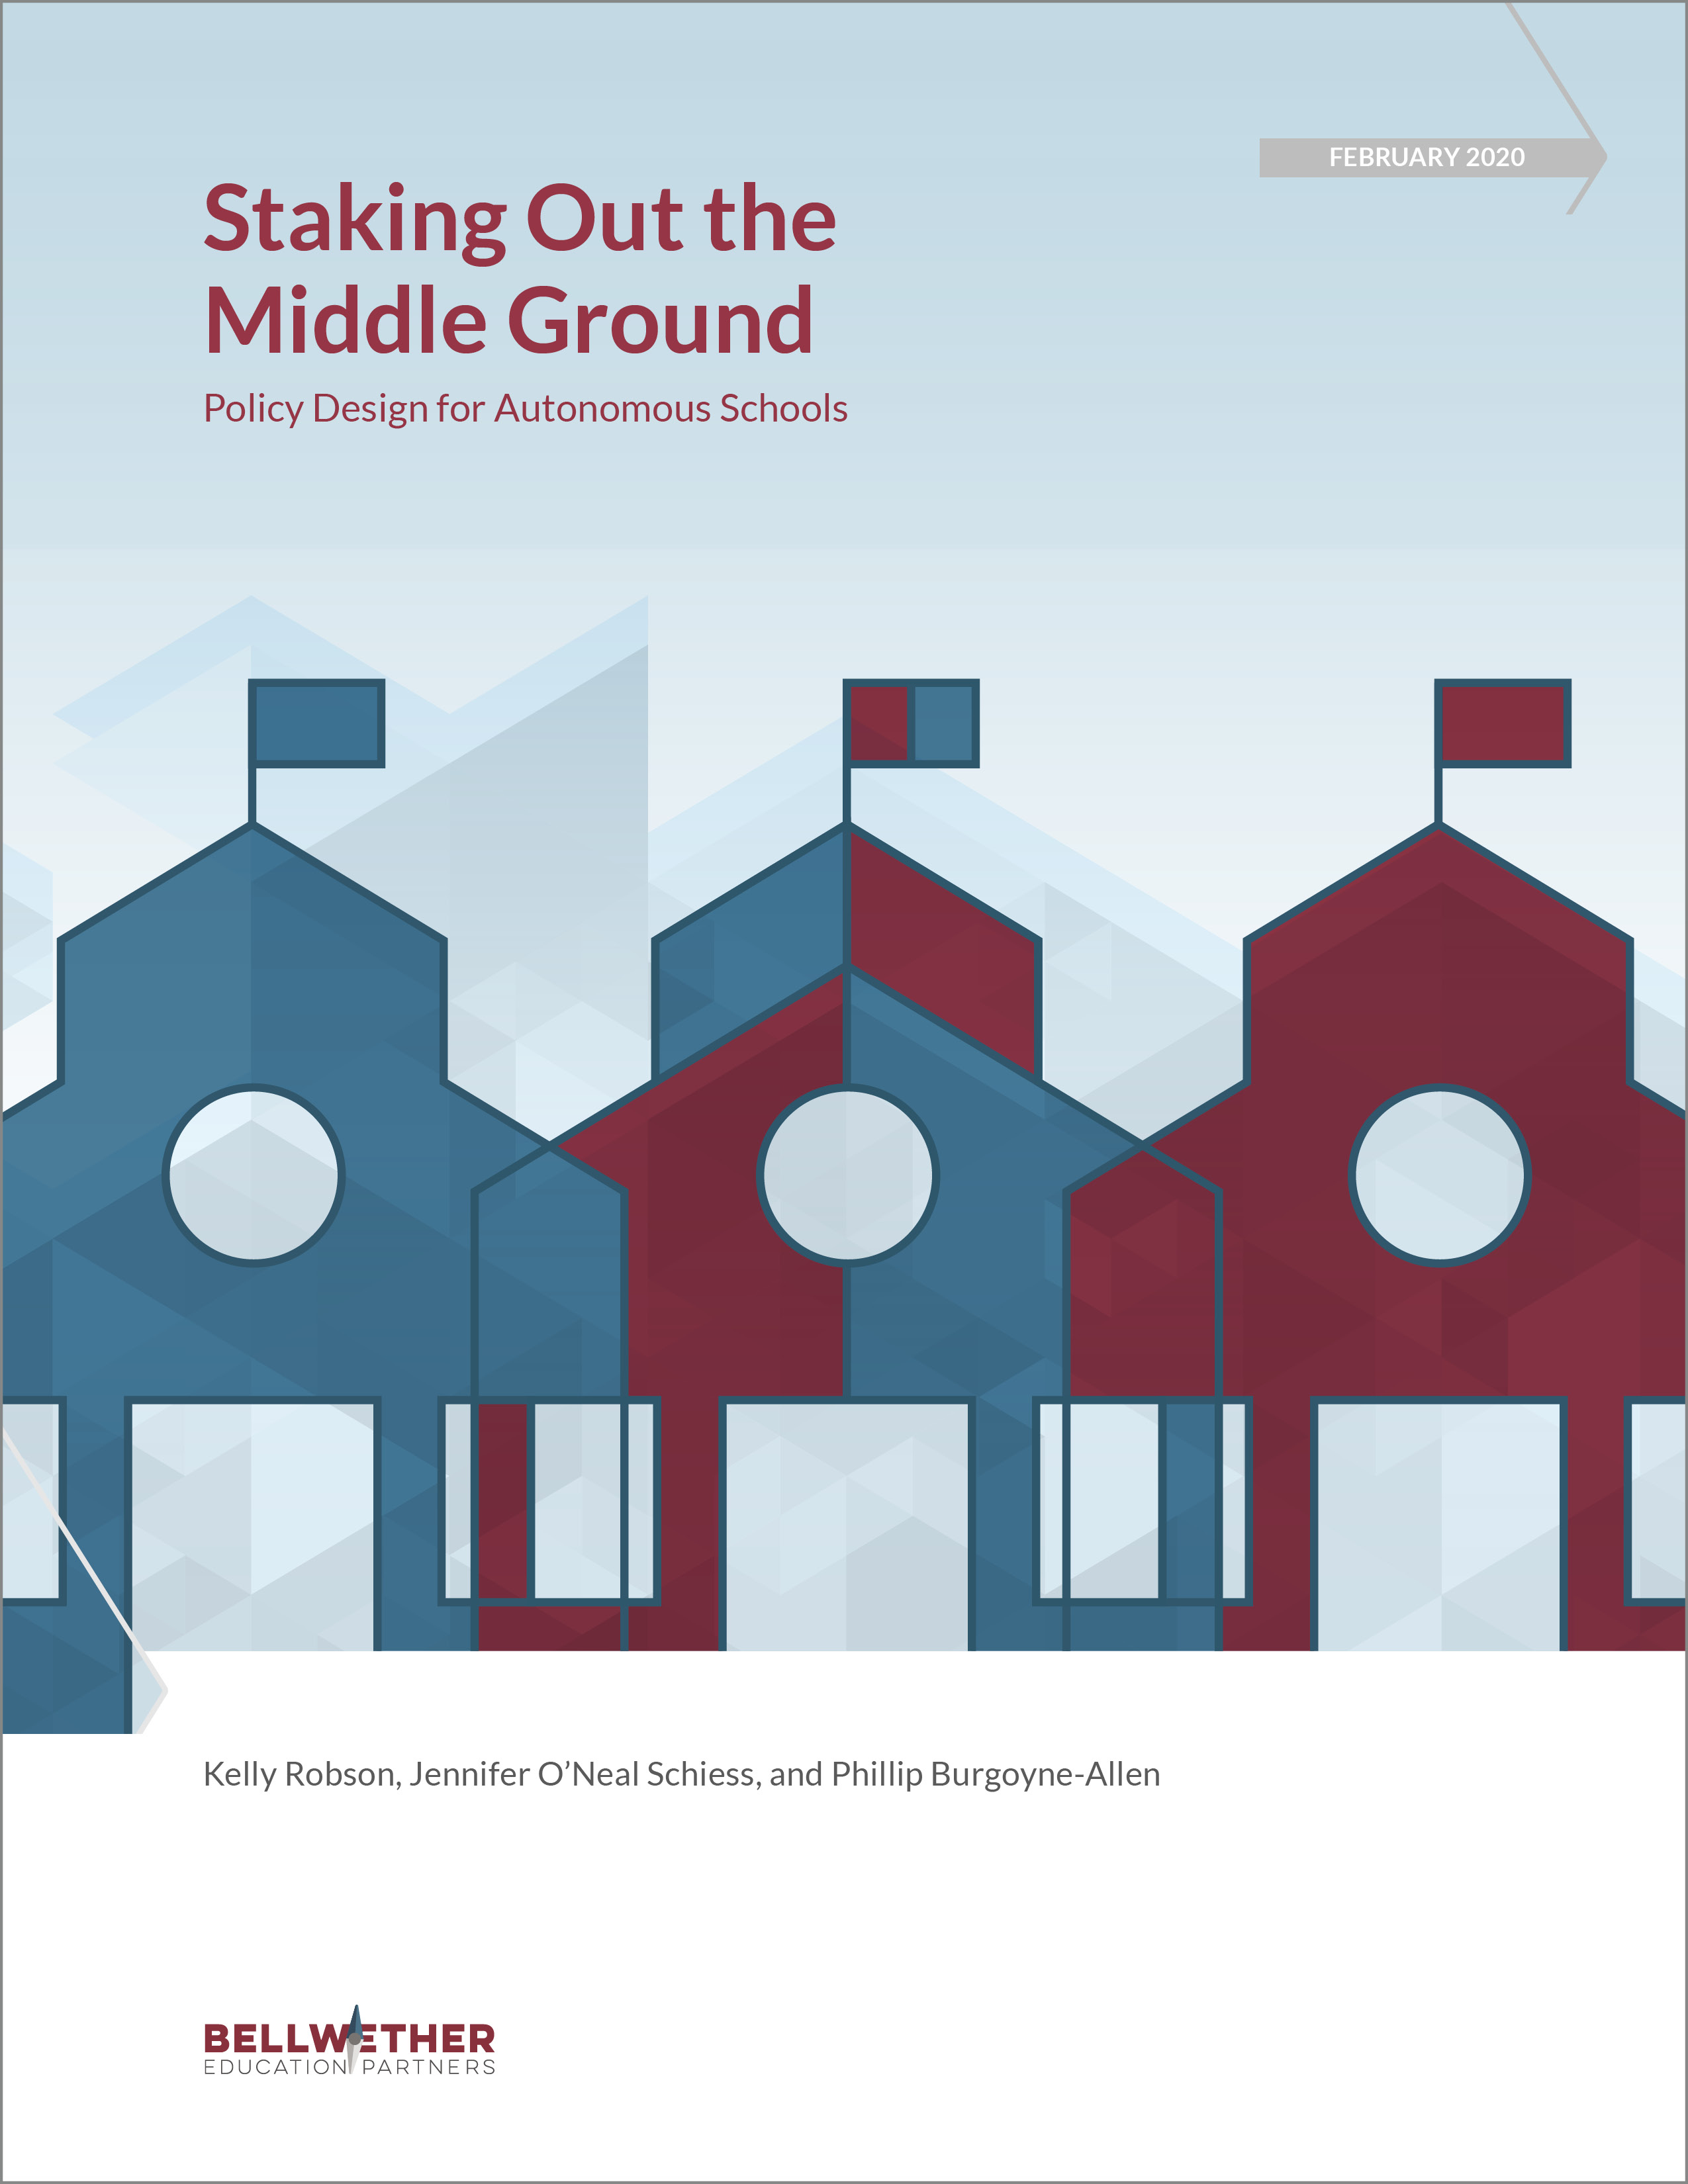 Cover image for Bellwether publication Staking Out the Middle Ground: Policy Design for Autonomous Schools February 2020